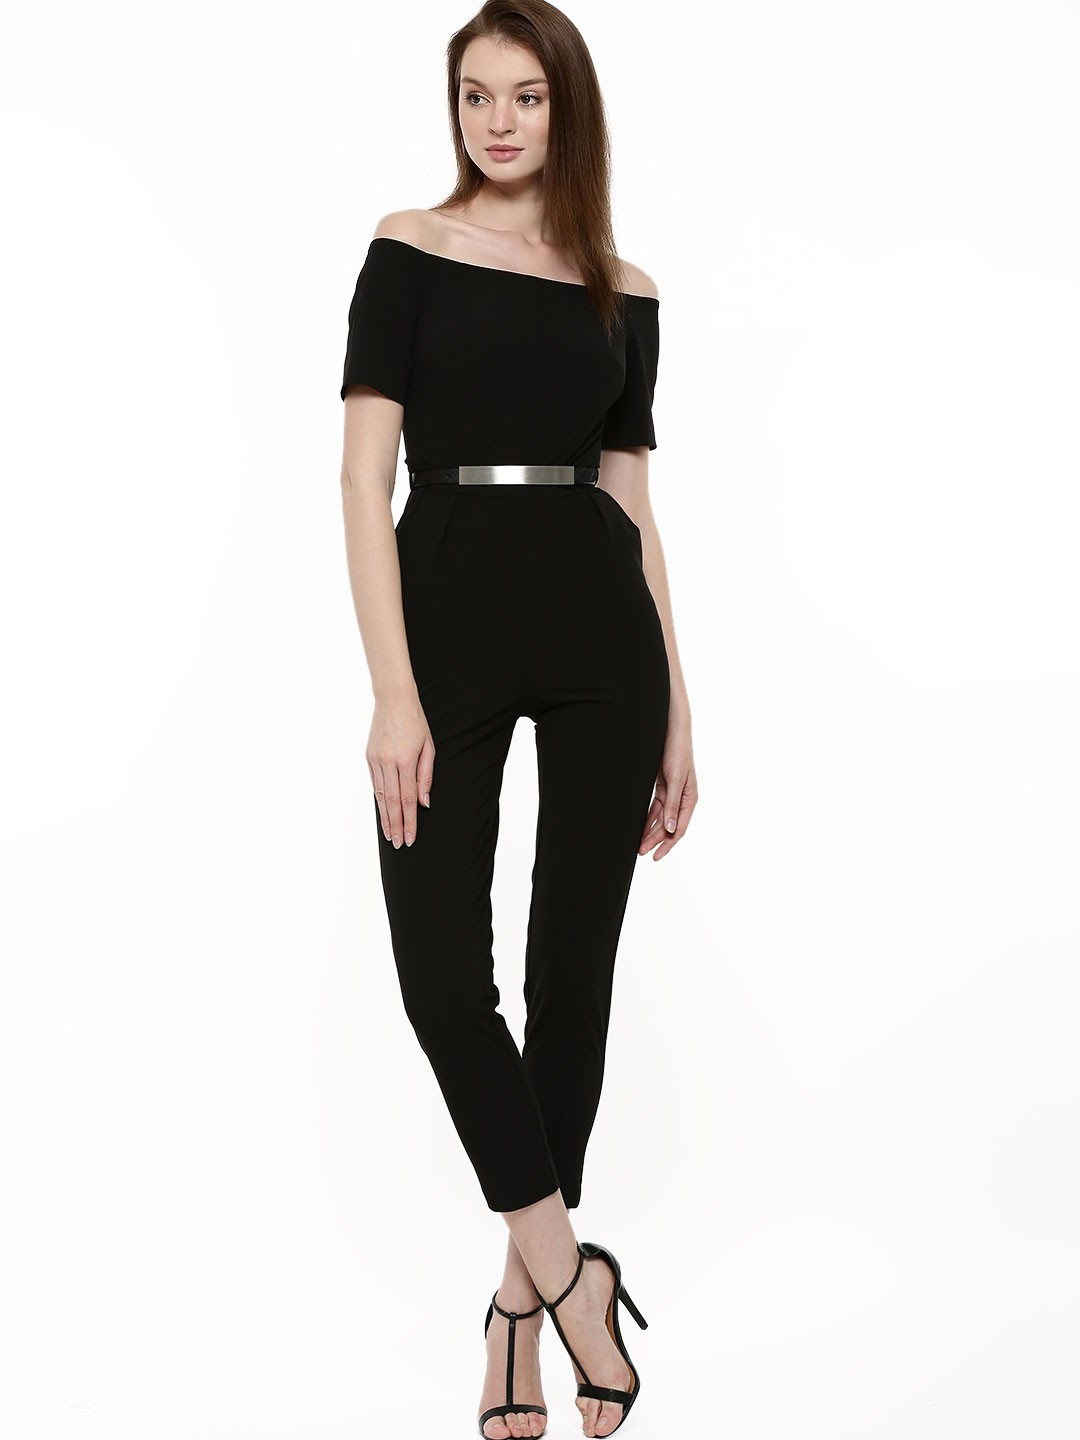 Shop online for trendy women jumpsuits for all occasions. If you are looking forward to buy jumpsuits online, then look no away from europegamexma.gq –your ultimate fashion destination. It is a one-stop fashion shopping overhaul for women who look forward to adorning high fashion with enhanced sophistication and glamor at economical range.